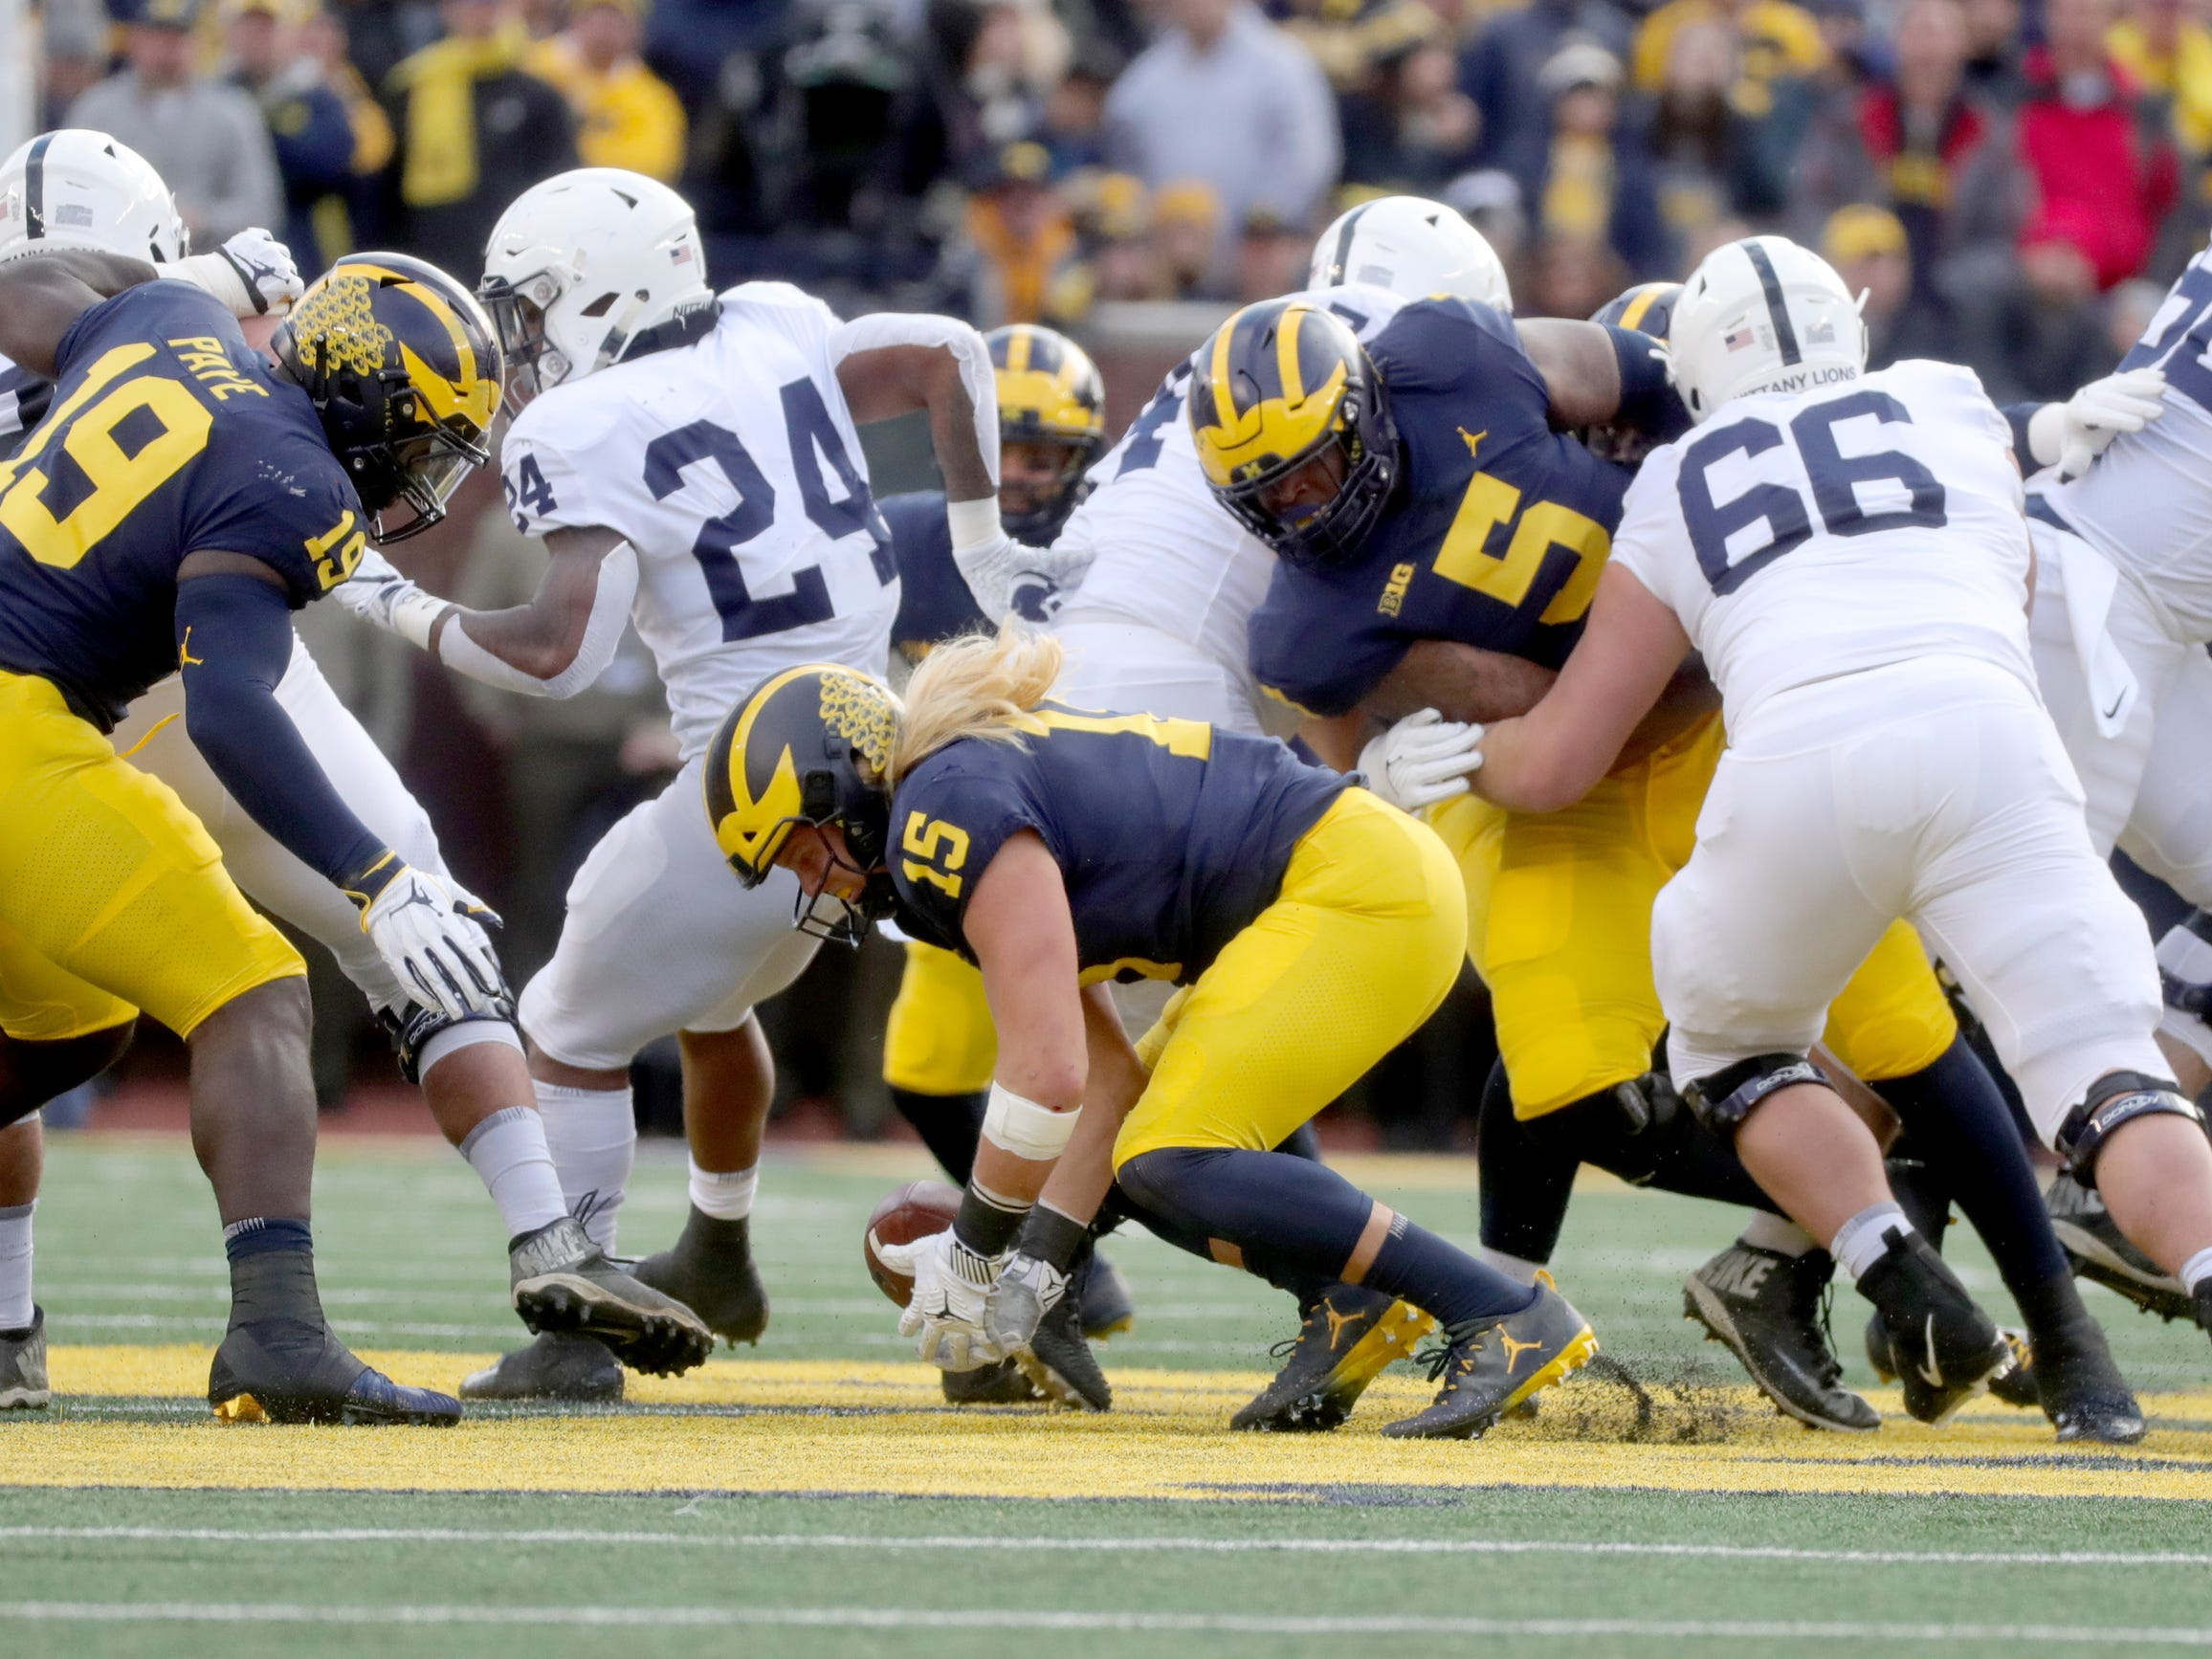 Michigan's Chase Winovich recovers a fumble against Penn State during the first half Saturday, November 3, 2018 at Michigan Stadium in Ann Arbor.